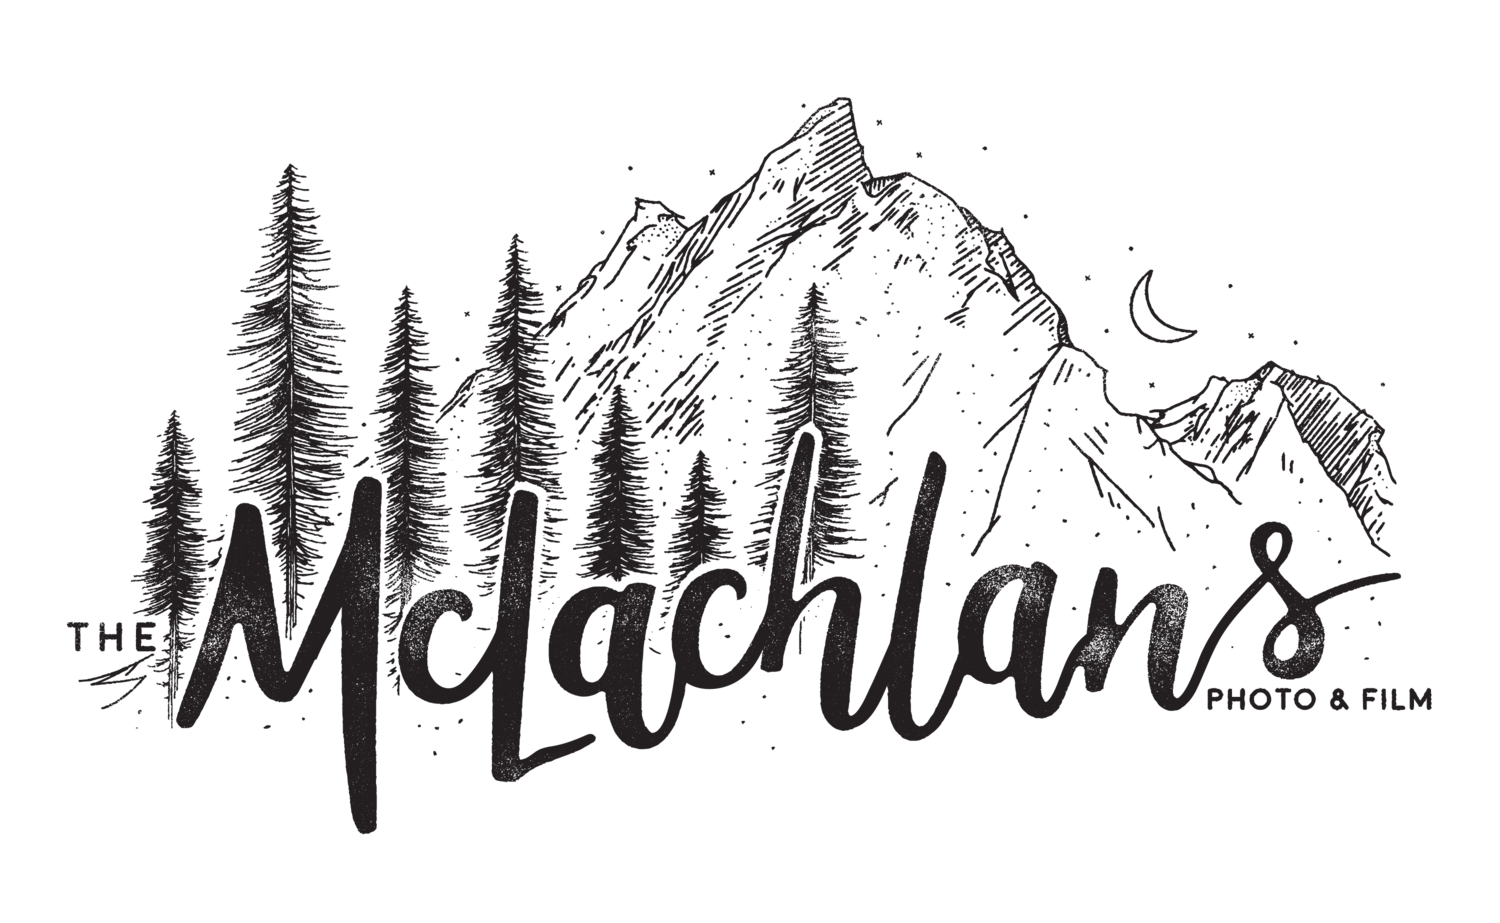 The McLachlans